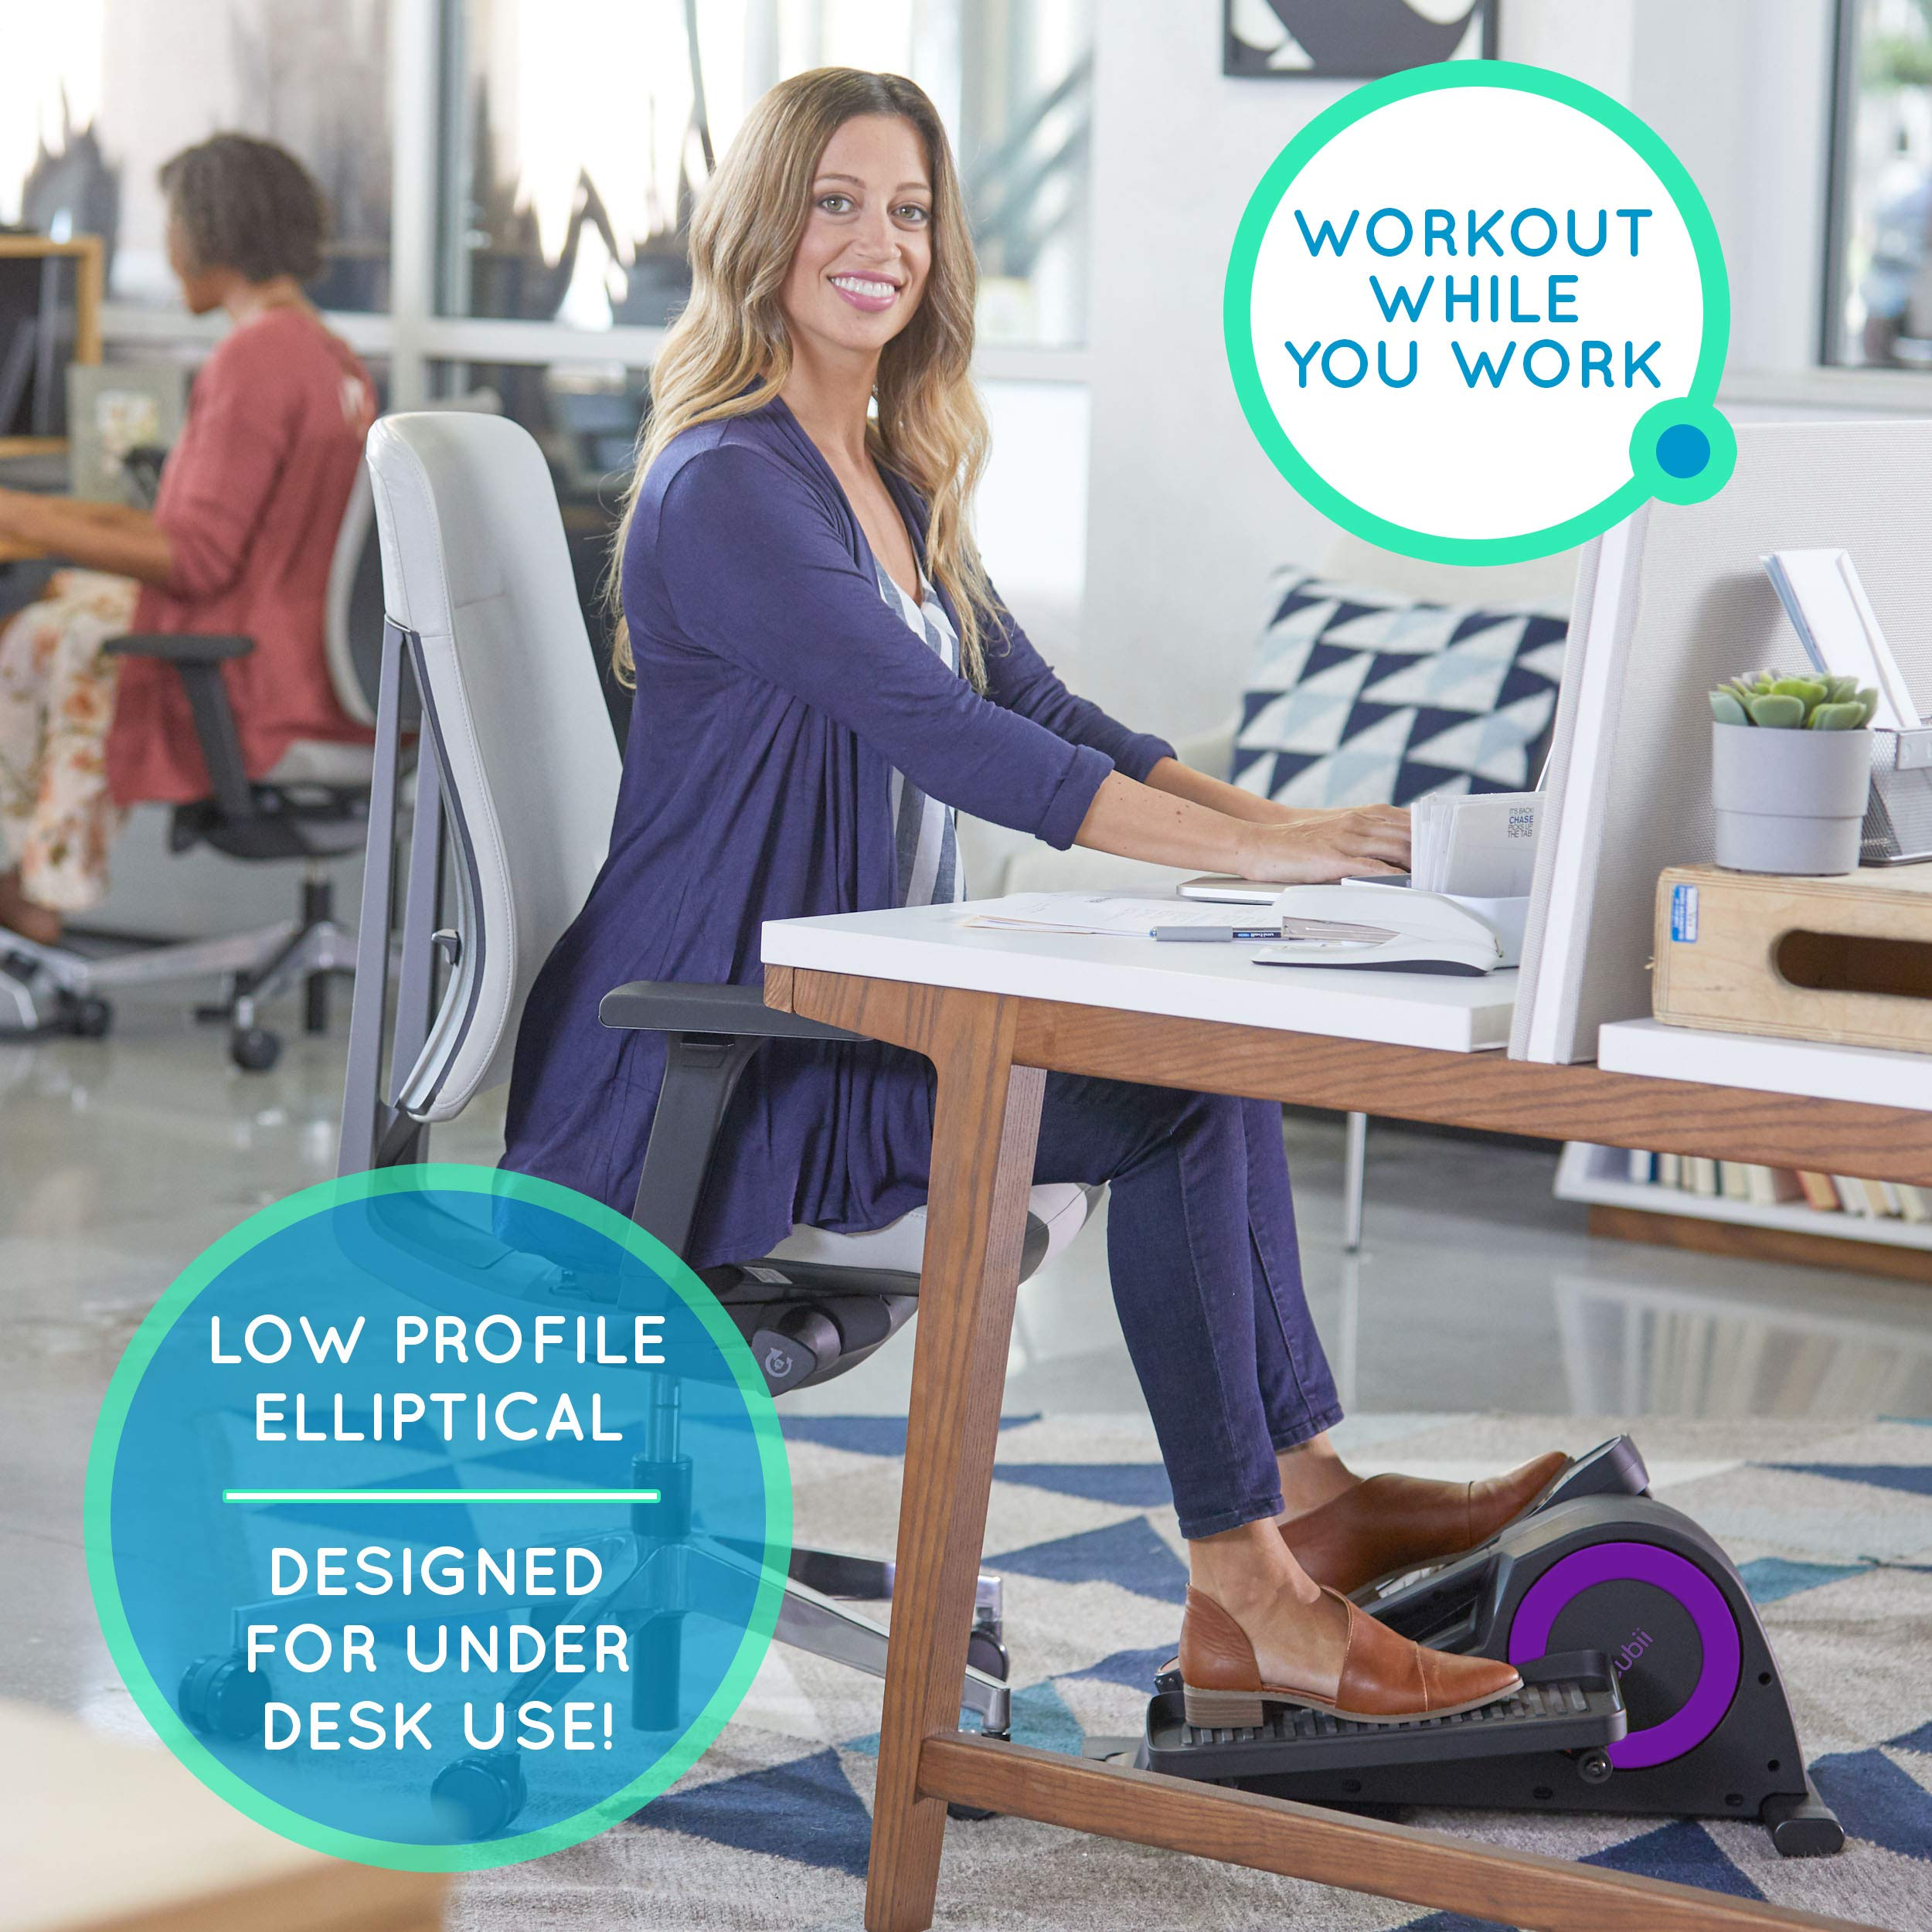 Cubii Jr: Desk Elliptical w/Built in Display Monitor, Easy Assembly, Quiet & Compact, Adjustable Resistance (Purple, One) by Cubii (Image #5)